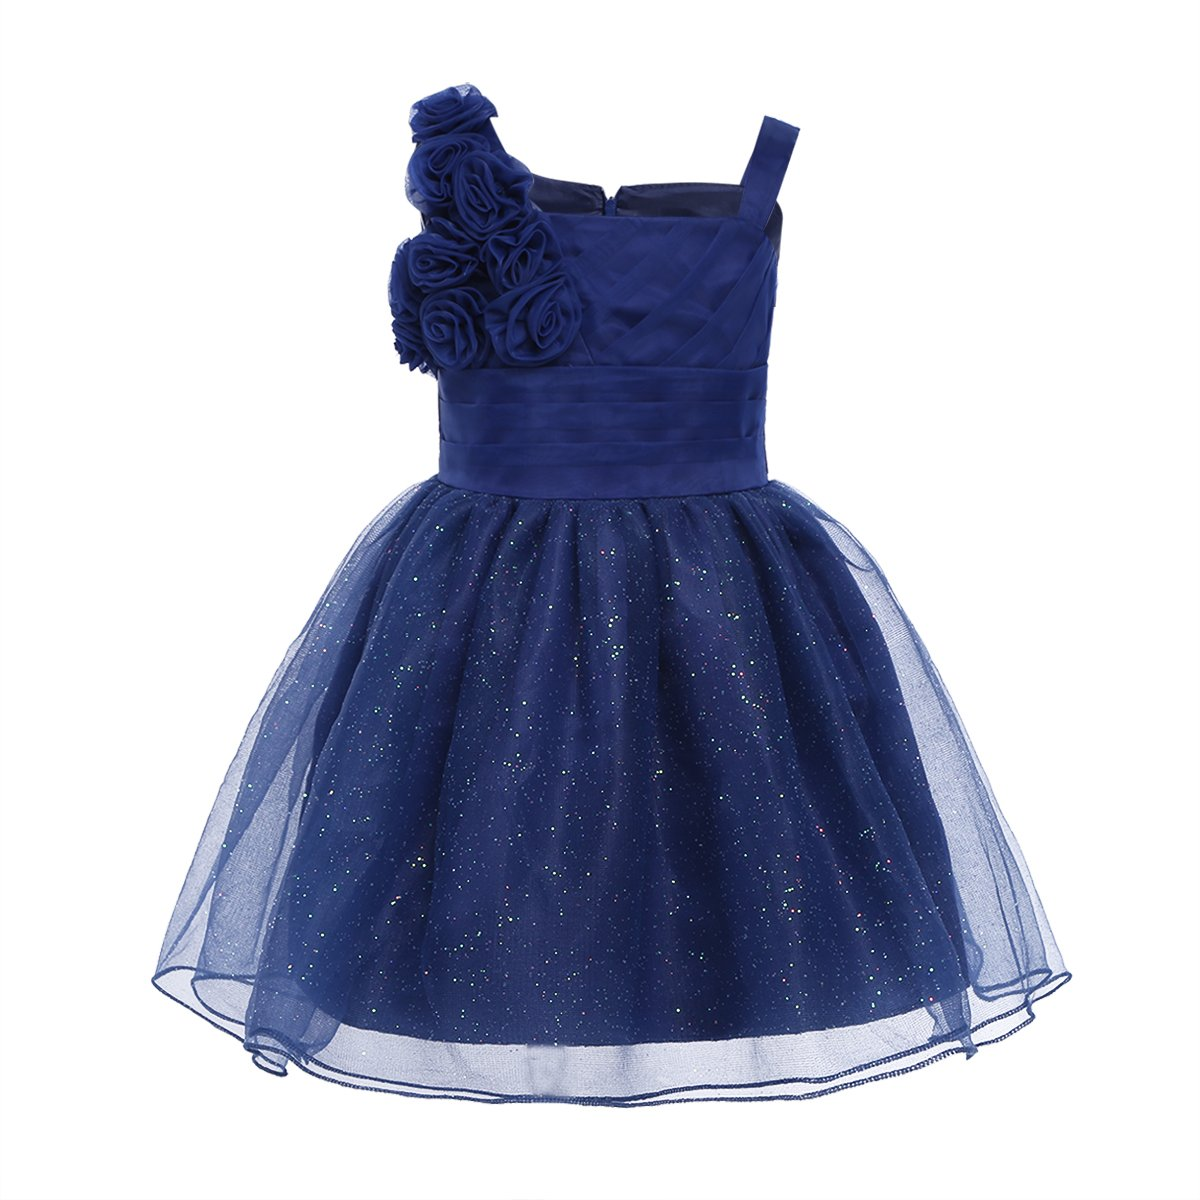 CHICTRY Baby Toddler Girls Glitter Tulle 3D Rose Princess Wedding Pageant Party Flower Dresses Navy Blue 3-6 Months